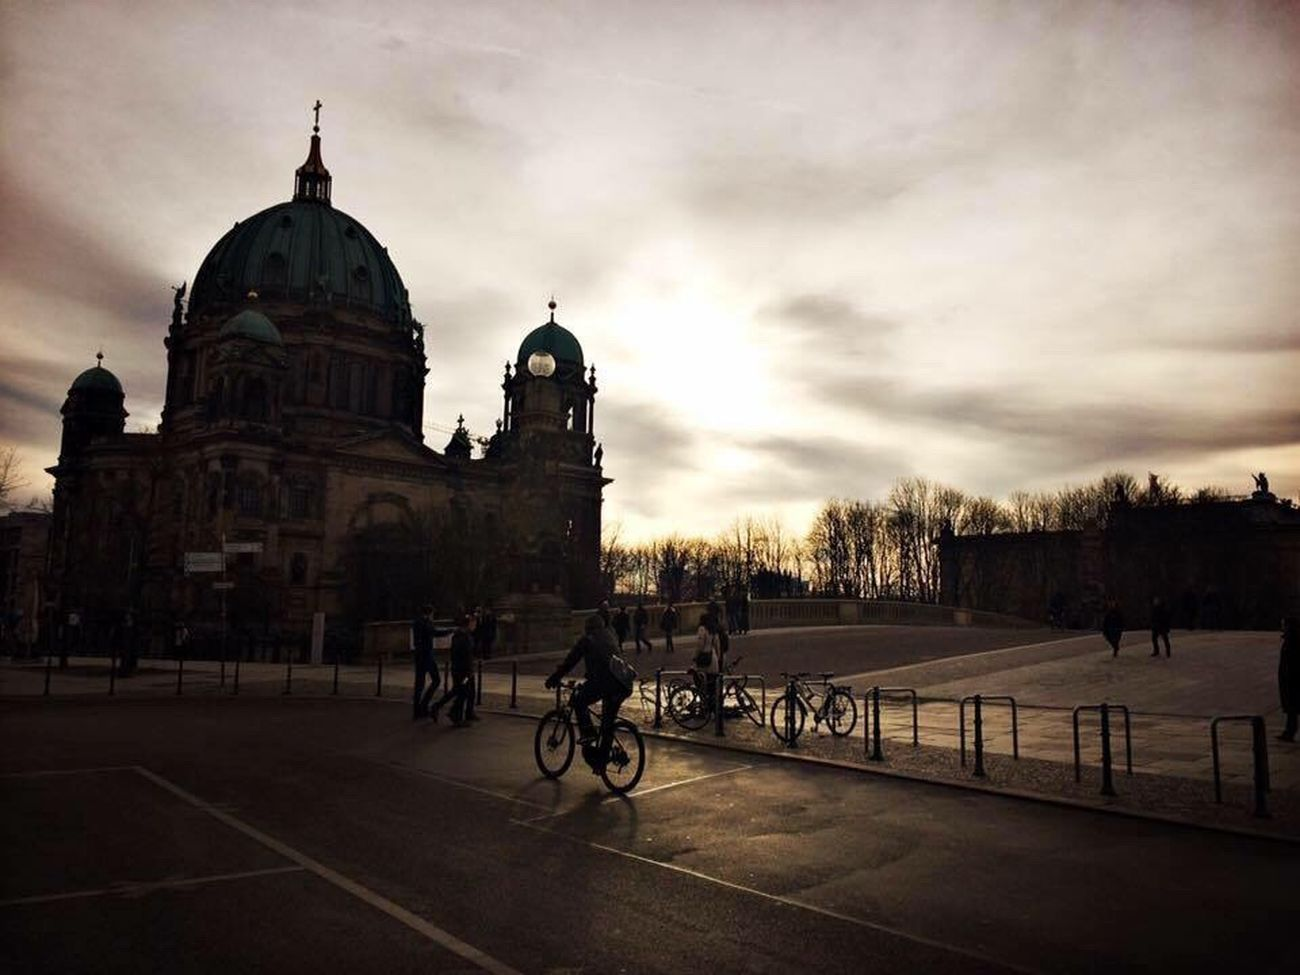 Berlin Berliner Ansichten Berlin Mitte Berlin Photography Berliner Dom Berlin Street Photography Berlinstagram Berlindubistsowunderbar Berlinarchitecture Architecture Dome